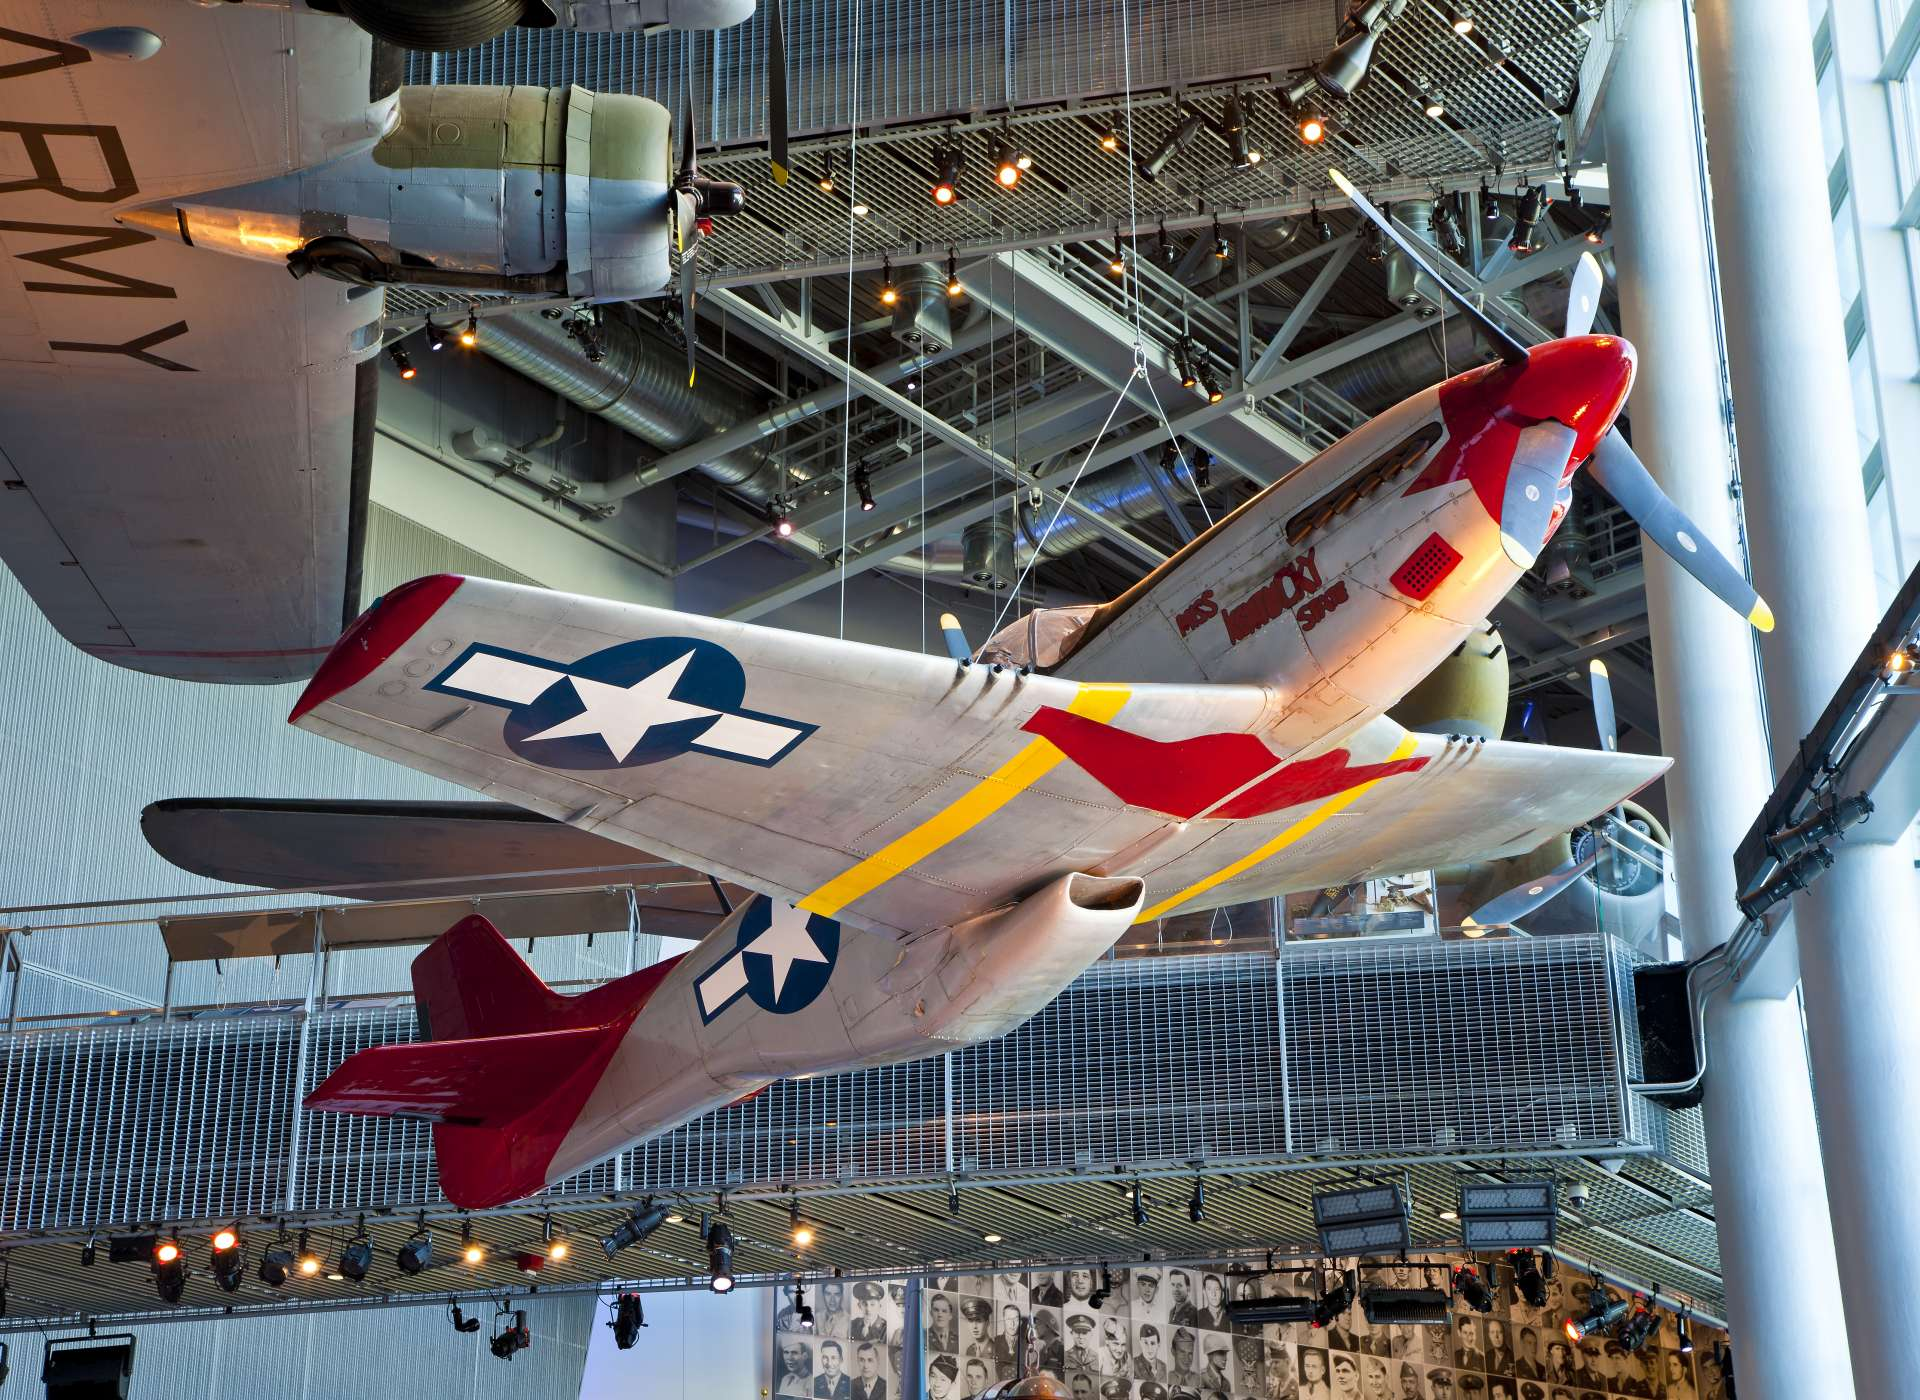 P-51 Red Tail aircraft in US Freedom Pavilion